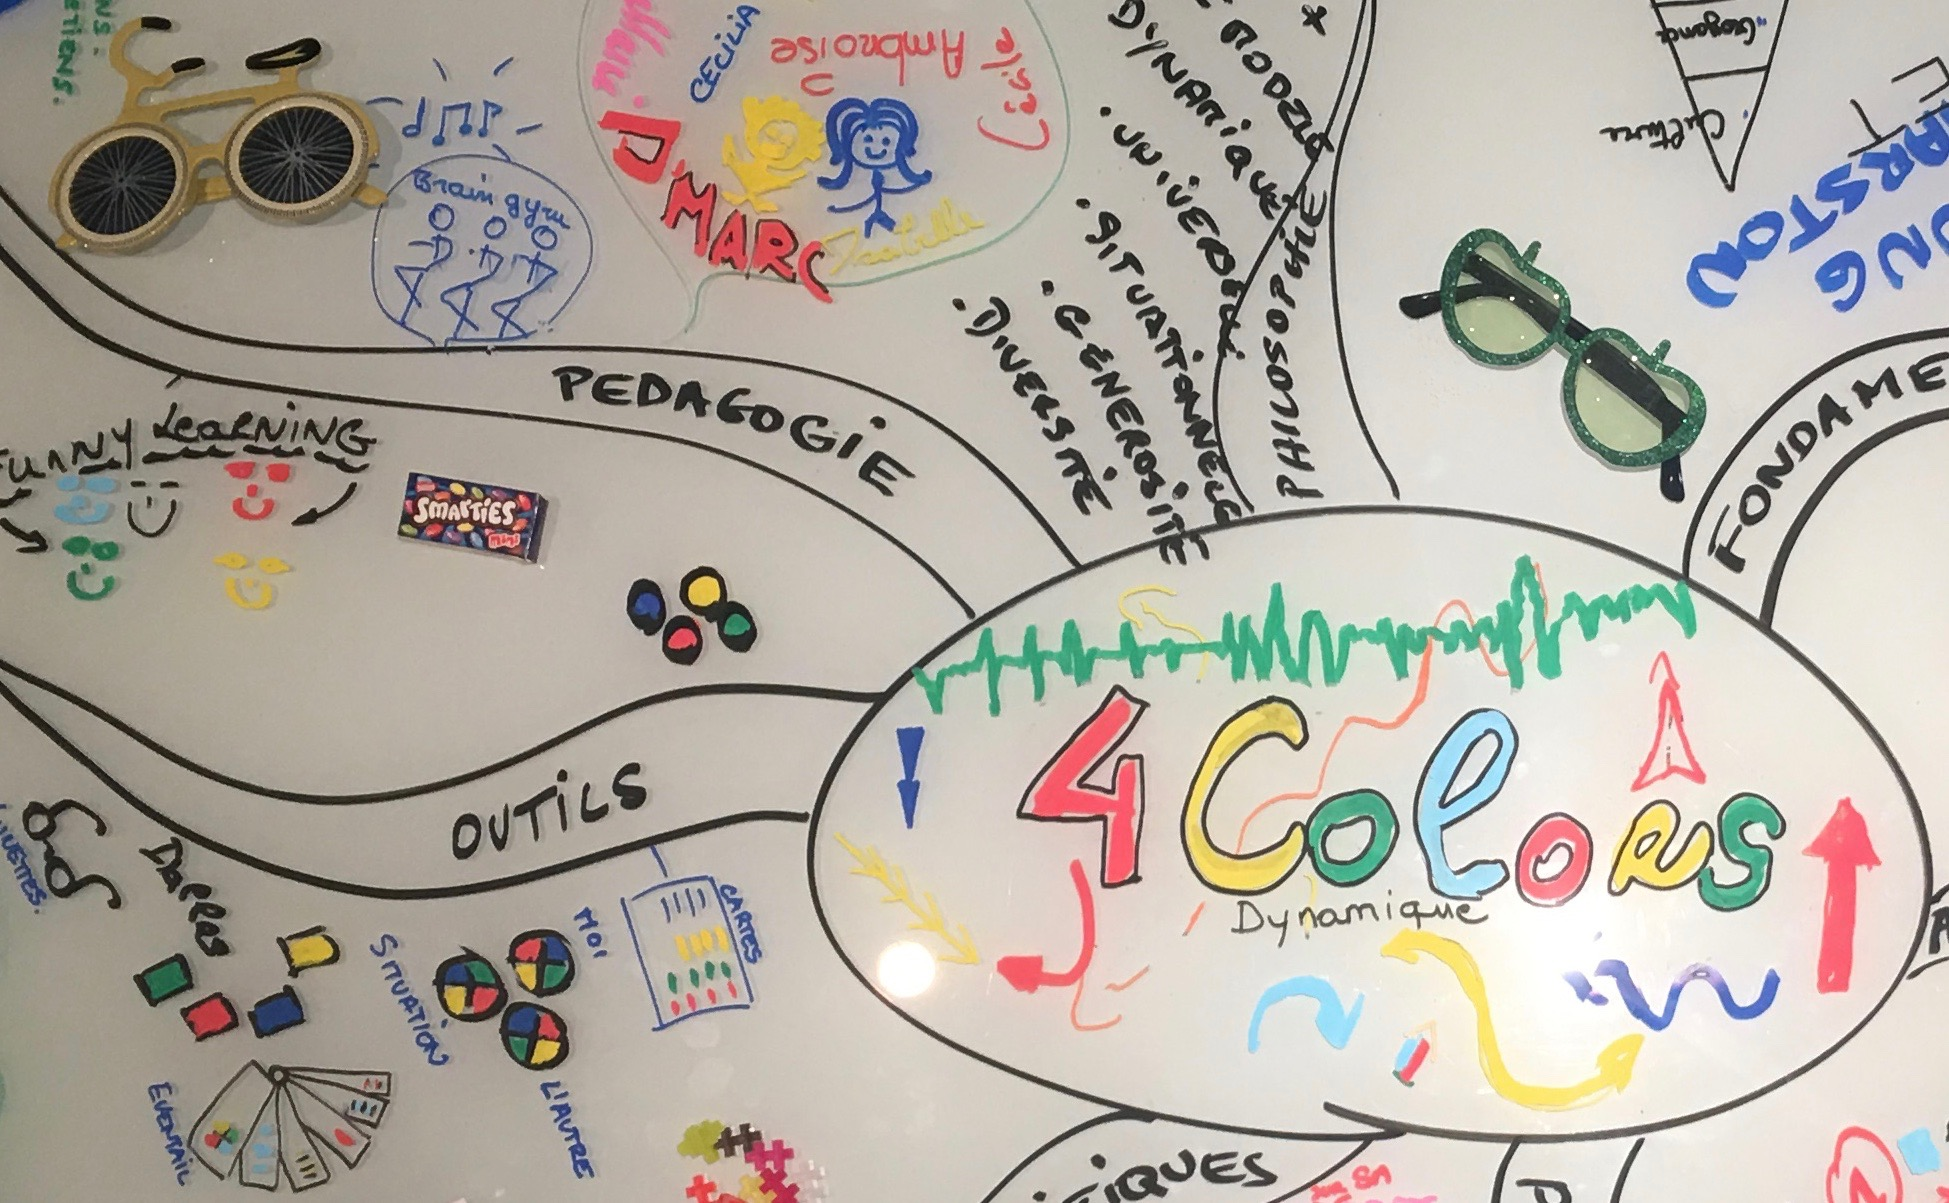 4Colors Mind map